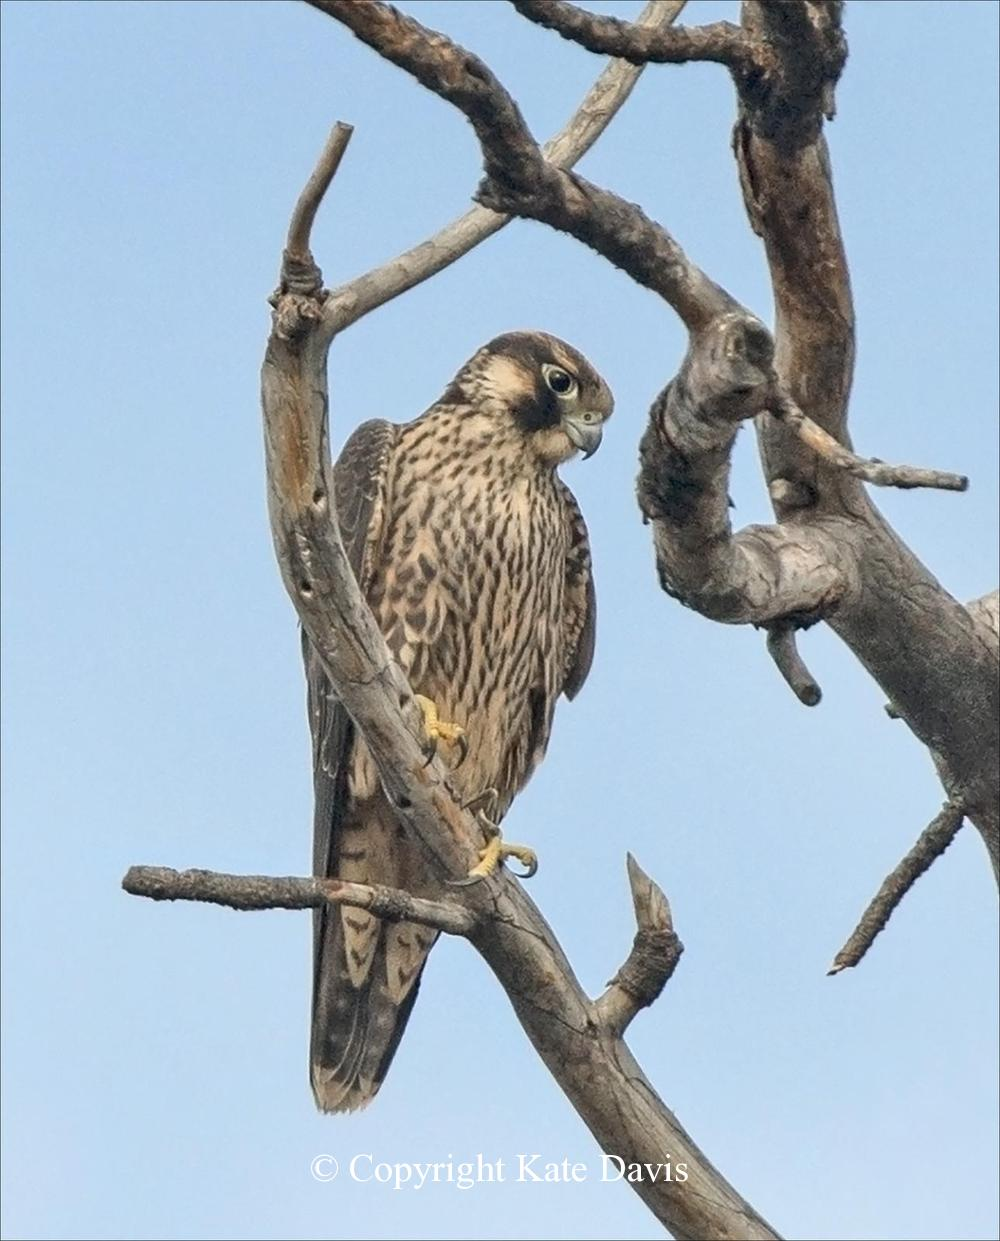 Peregrine Falcon - Young Peregrine in August - American Kestrel - Calmly surveying the river by the house